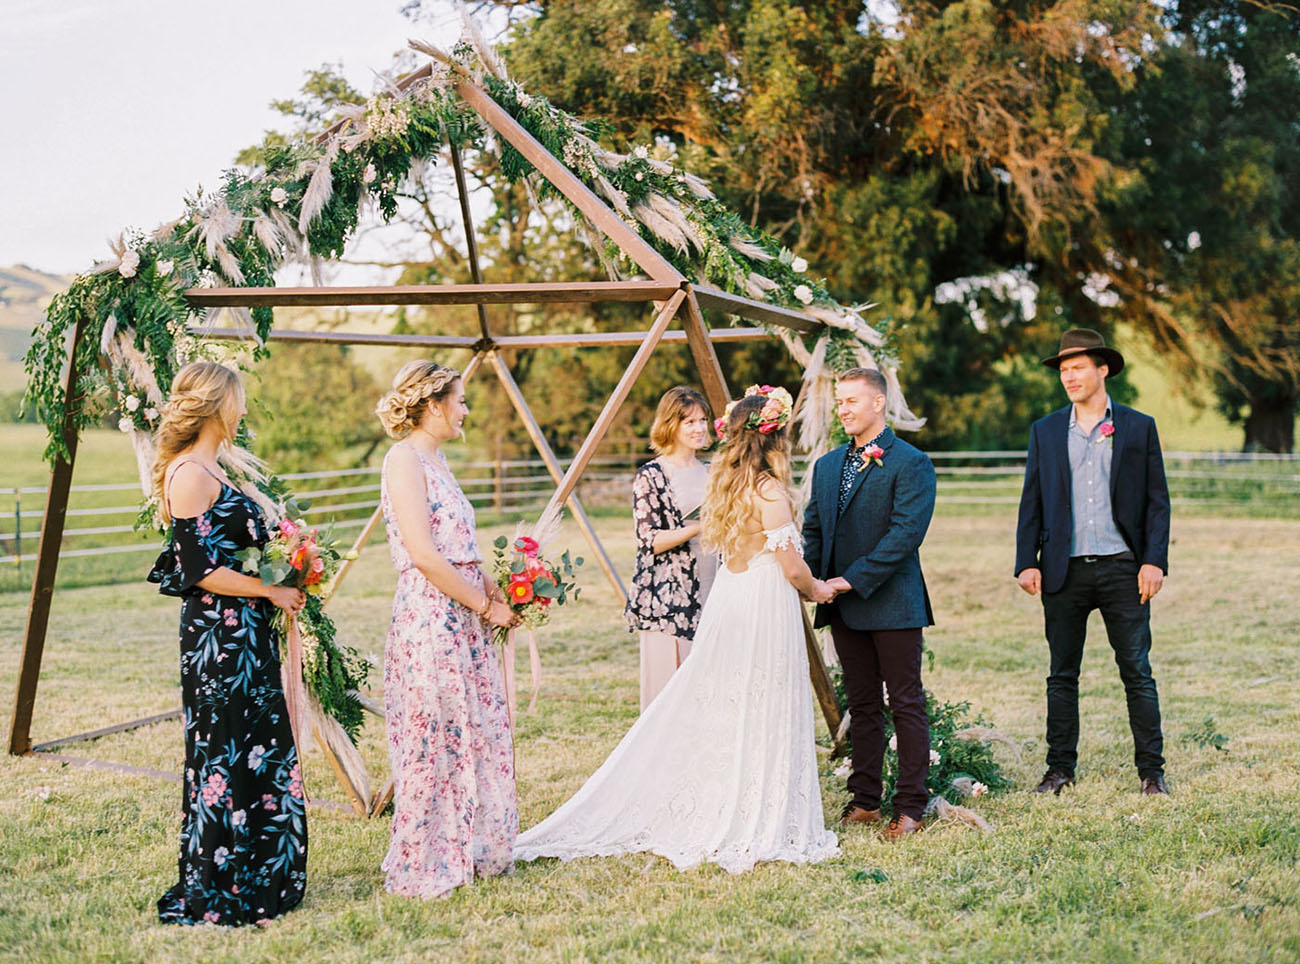 Glamping Festival Wedding Inspiration